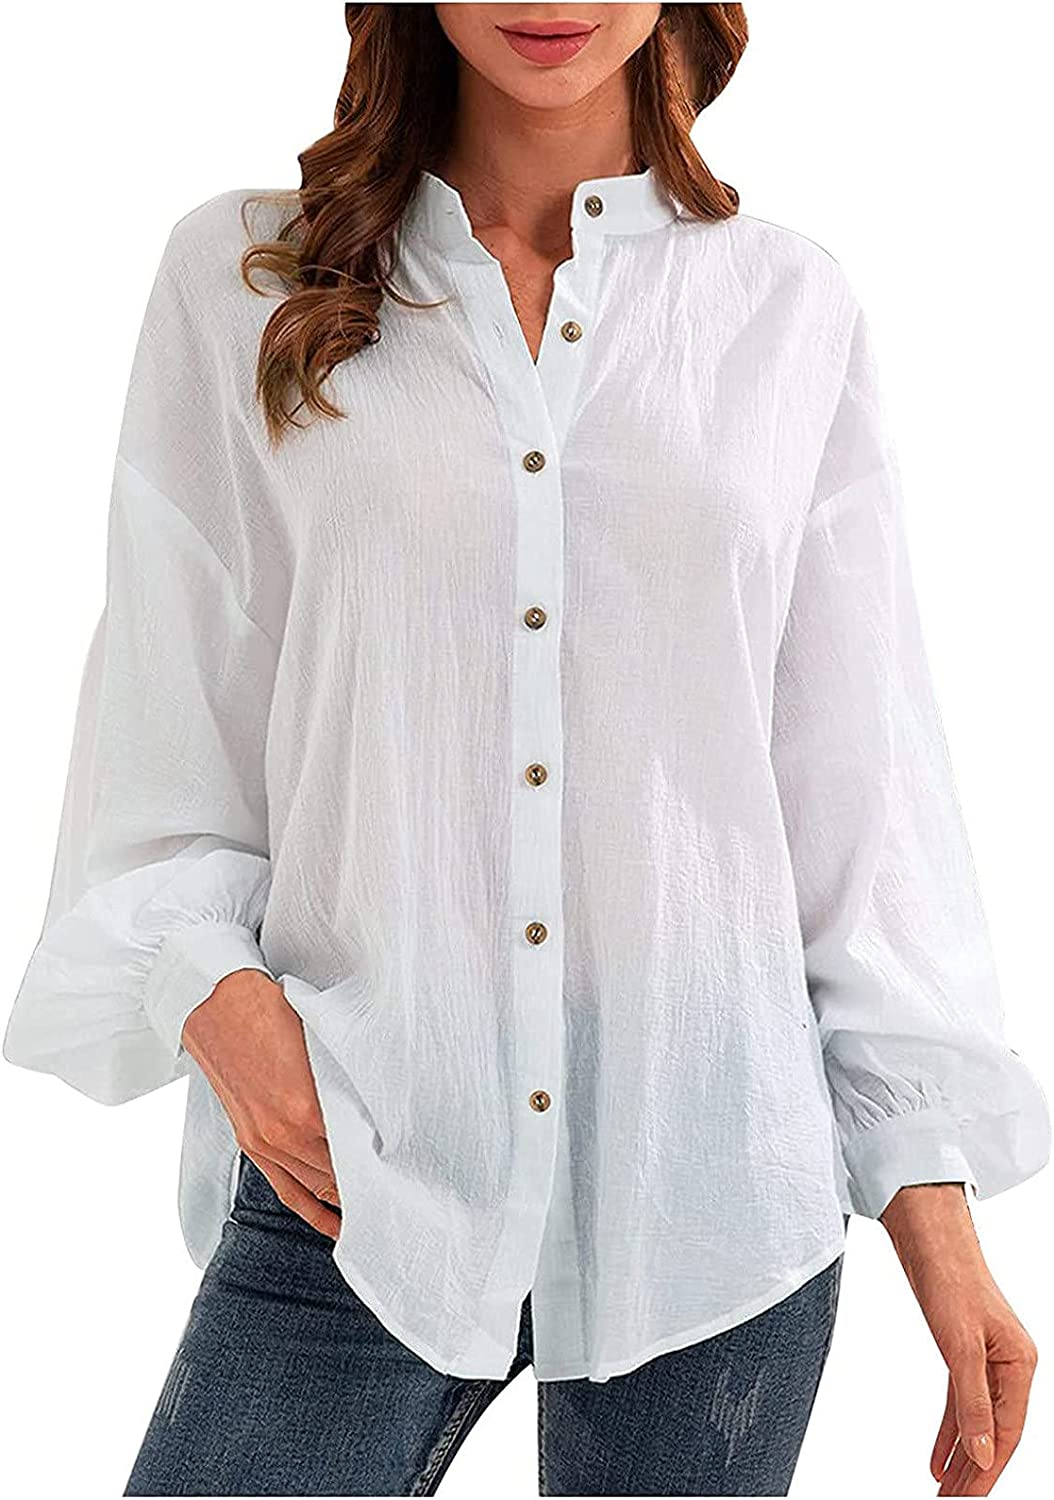 SHOPESSA Women's Blouses Button-Down Shirts Comfy Linen Loose Tee Shirts Solid Color Mock Neck Business Casual Shirts